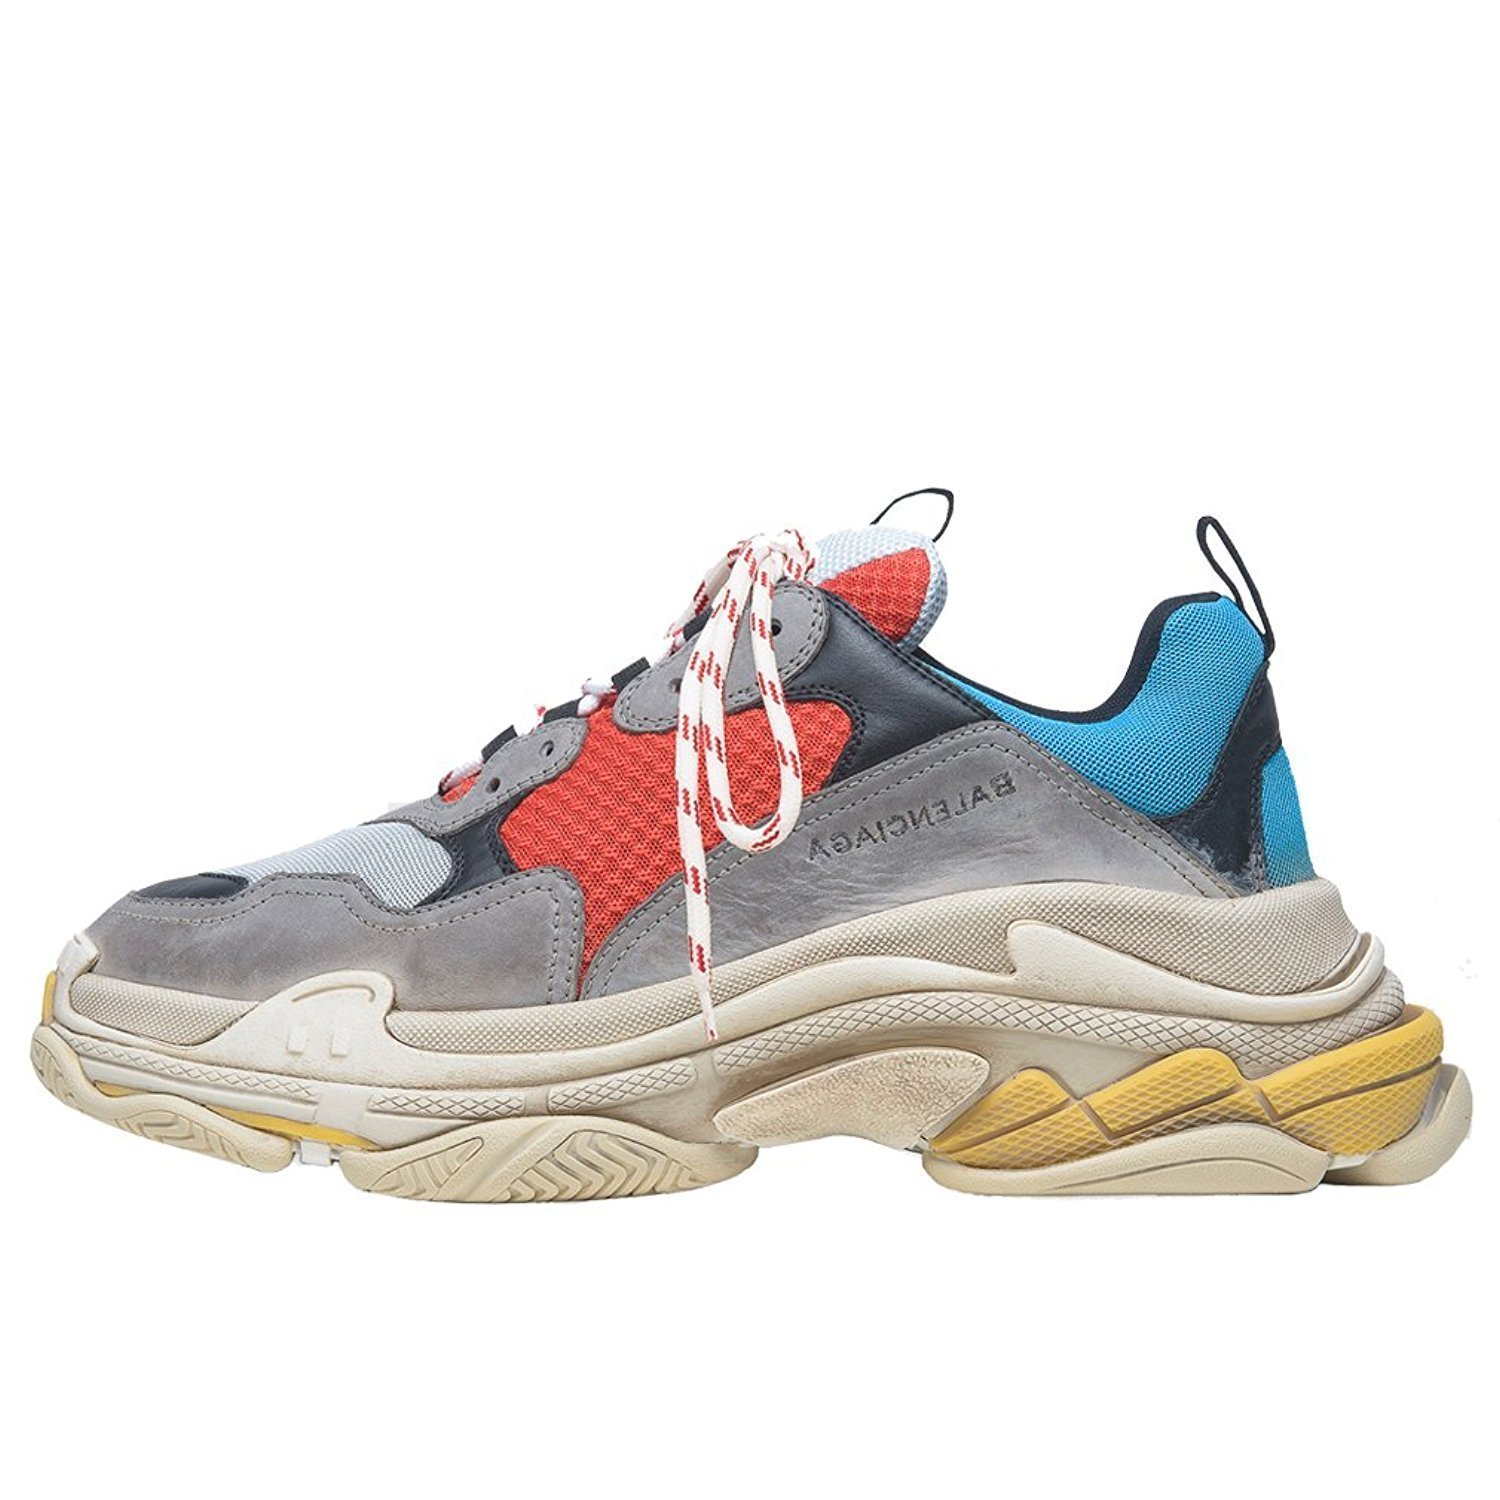 9b8e1aa26a7 Balenciaga Triple S Size EU 40: Amazon.co.uk: Shoes & Bags